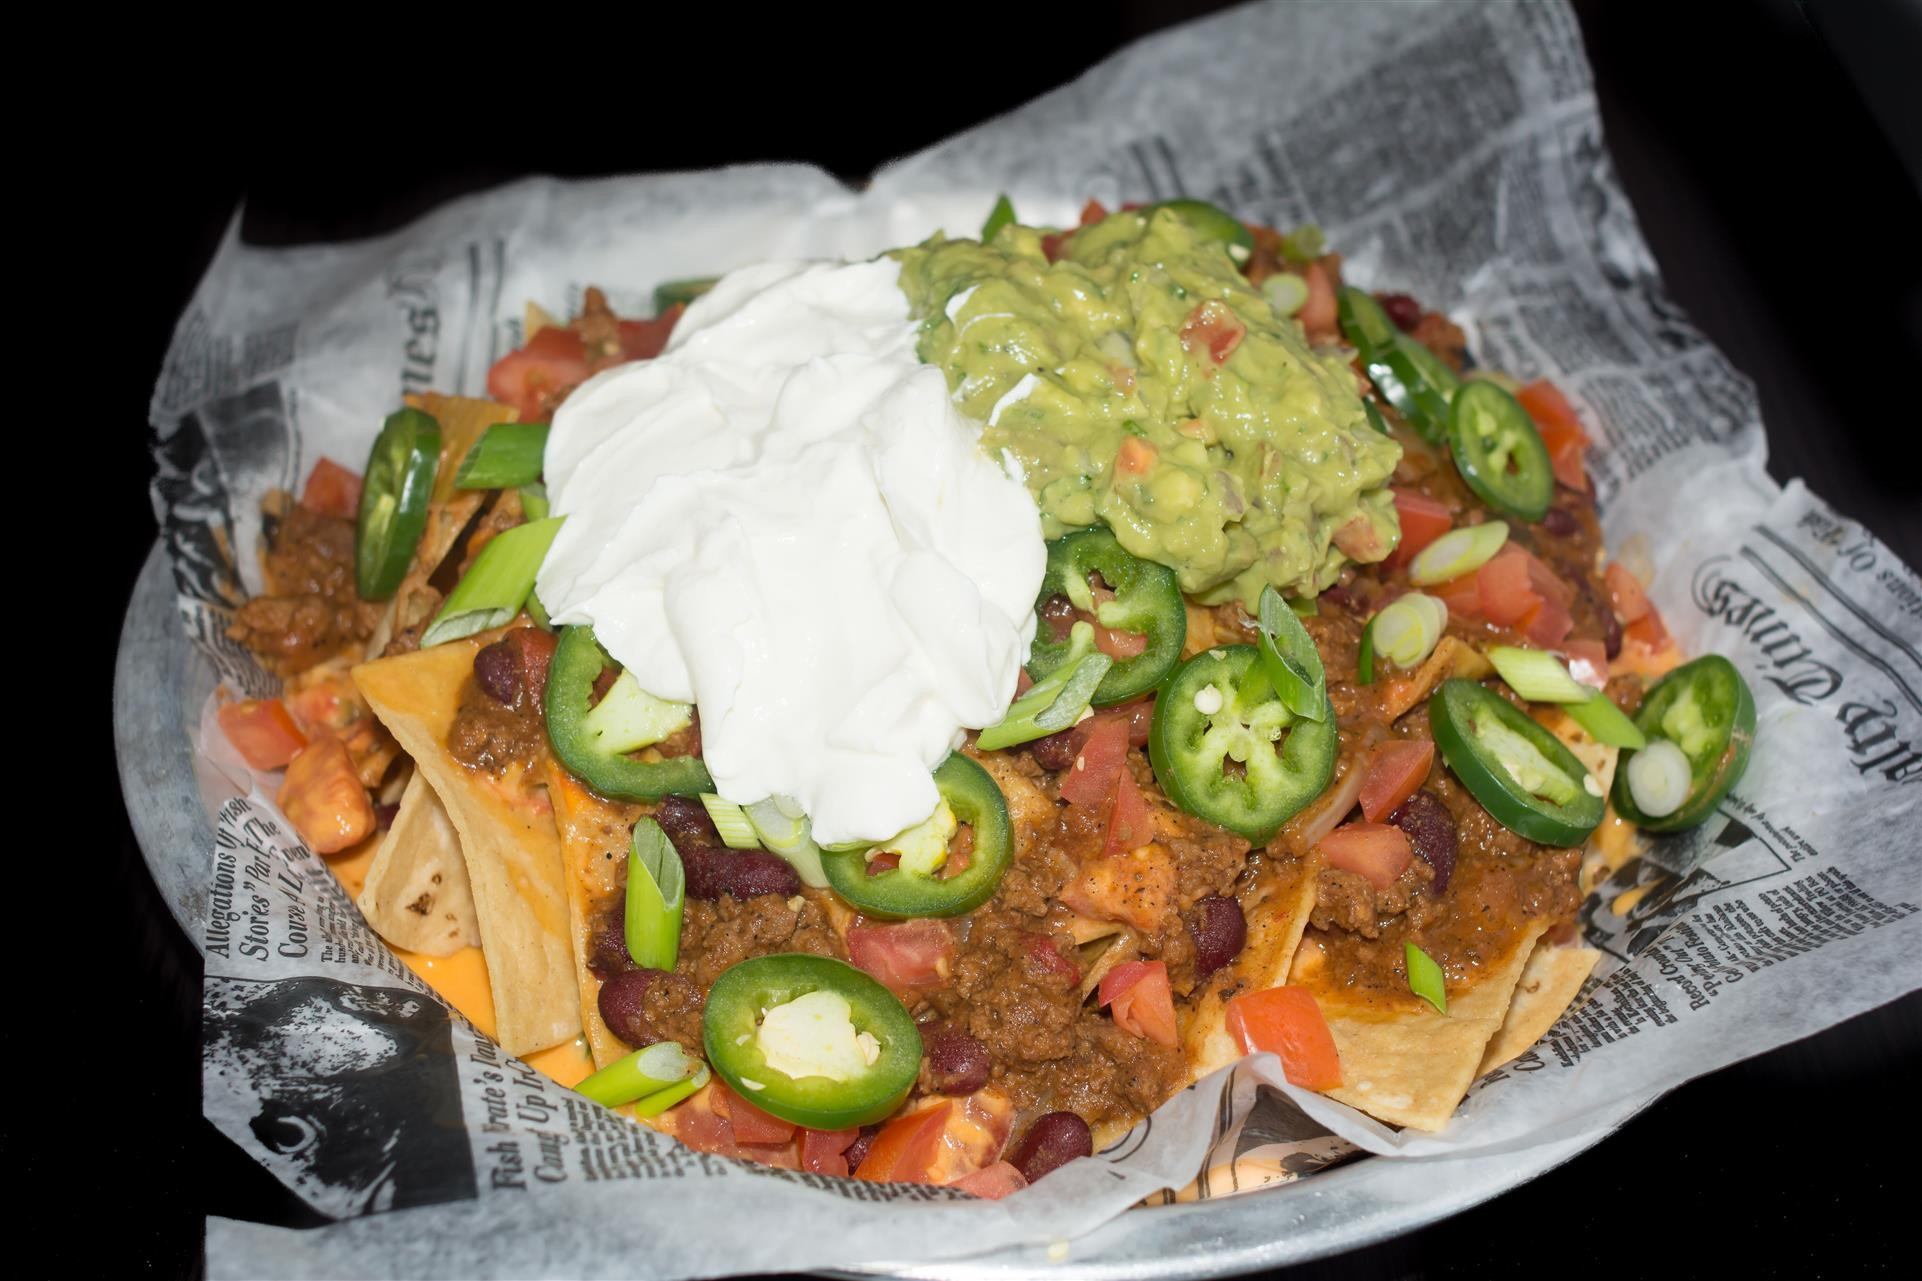 nachos Fresh nachos layered with our homemade chili cheese sauce, topped with fresh sliced jalapeños, chopped tomatoes, guacamole and sour cream.